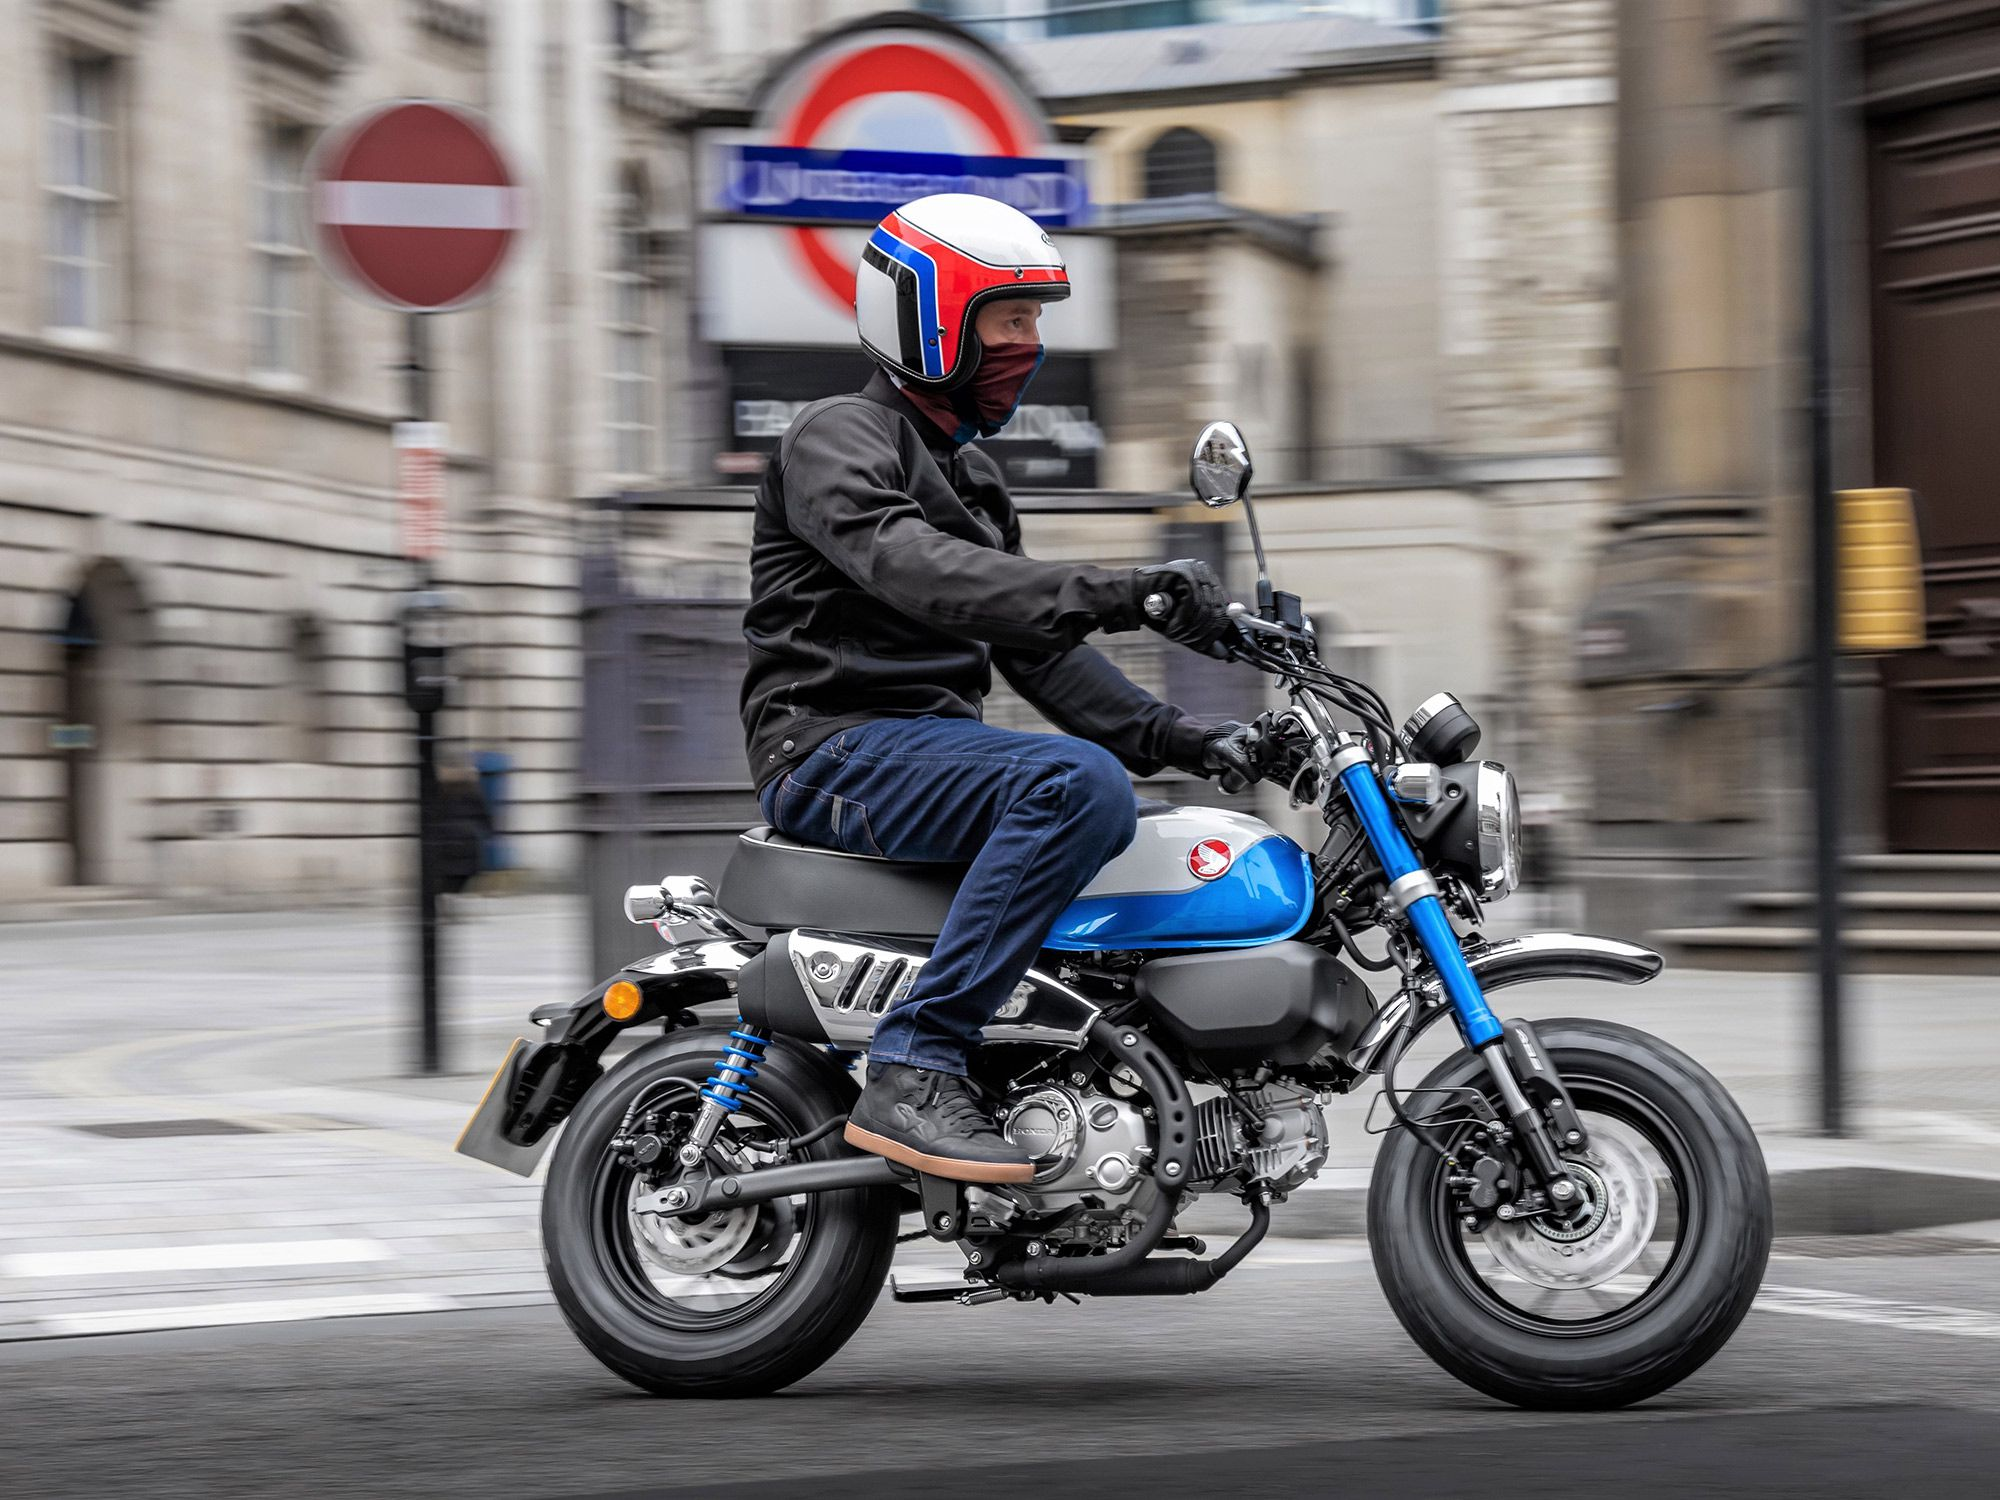 Honda's announced the return of the Monkey and Super Cub 125 to the European market for 2022.